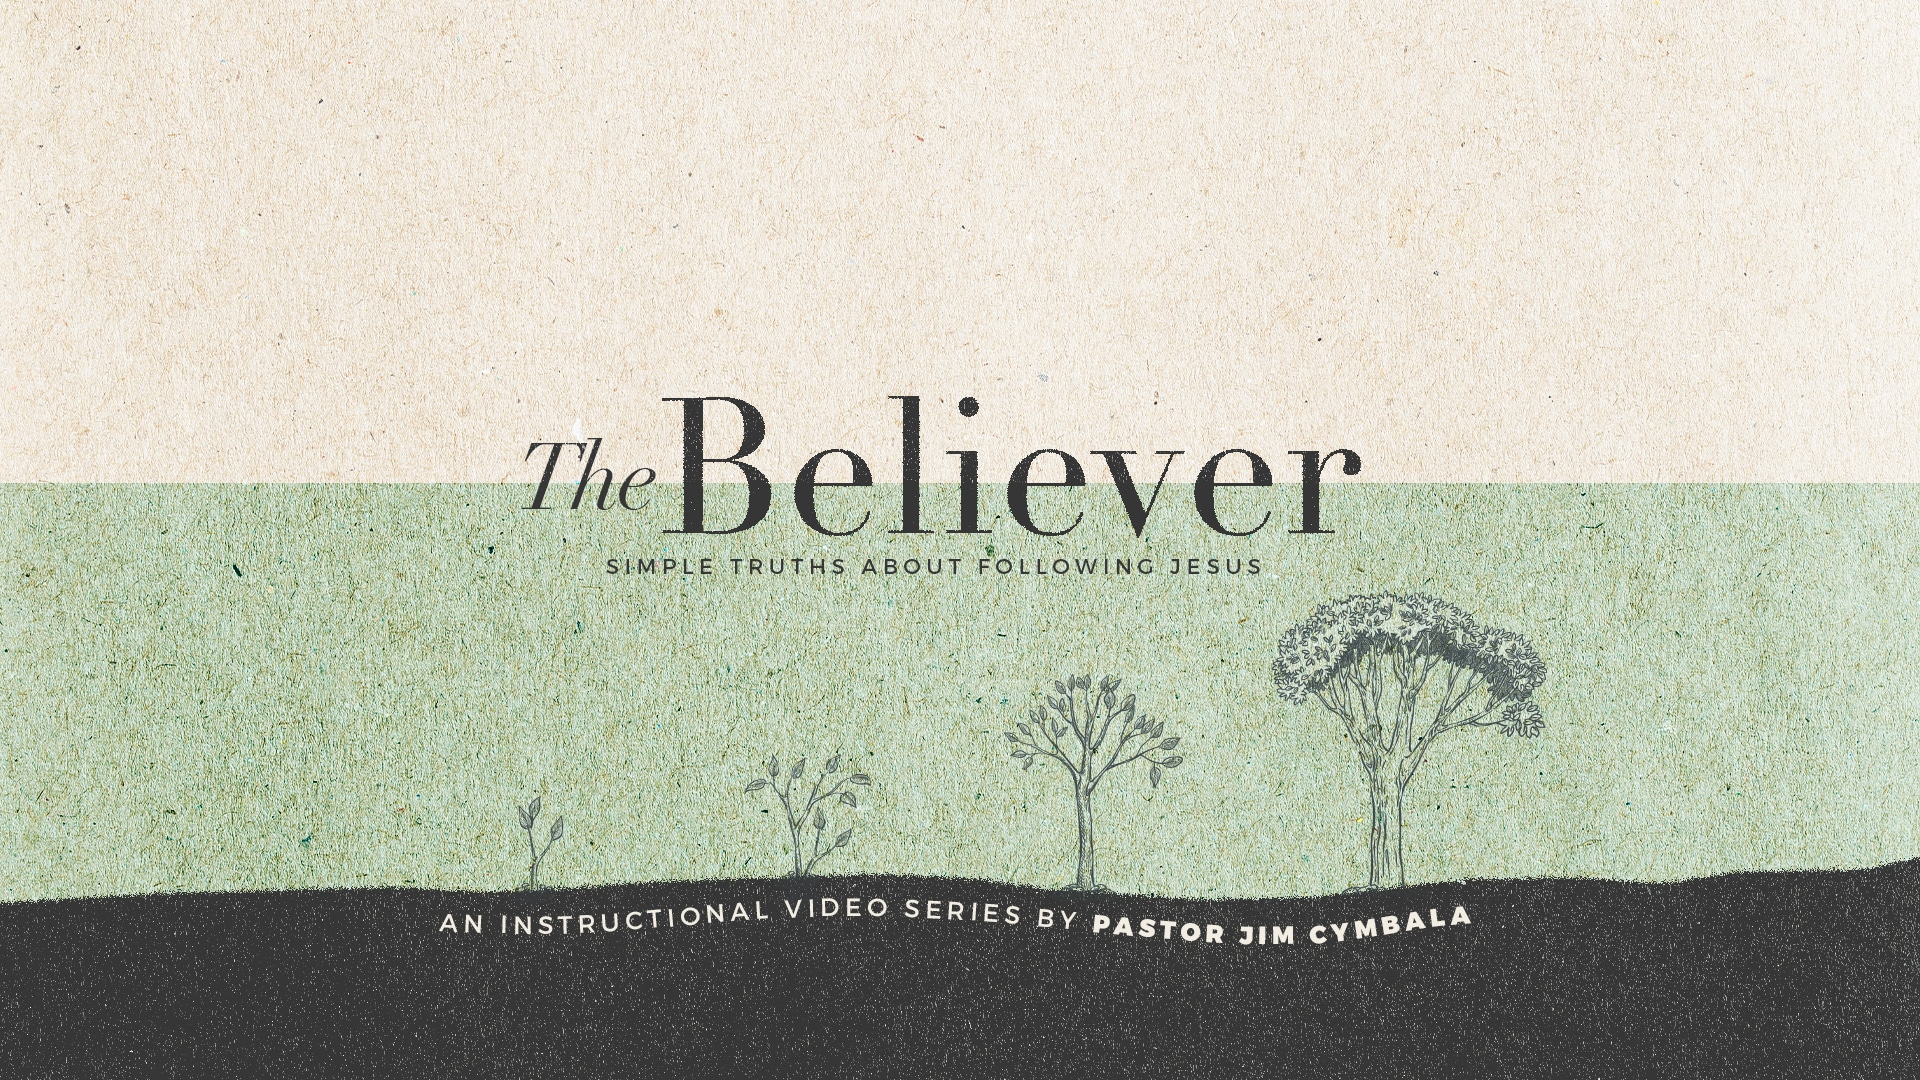 The Believer simple truths about following Jesus thumbnail